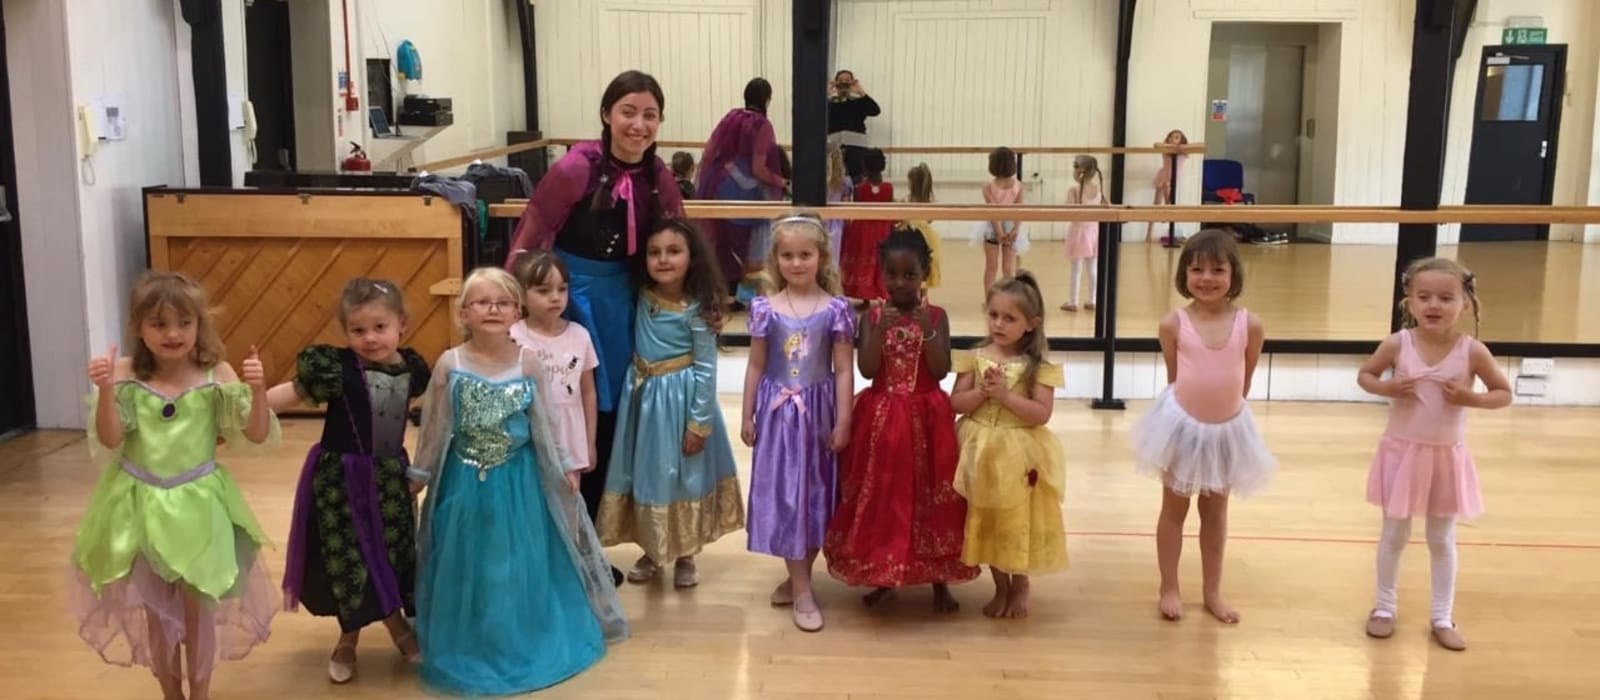 Dance leader Lucy with her Saturday morning ballet class in their fancy dress, ready for the danceaton.